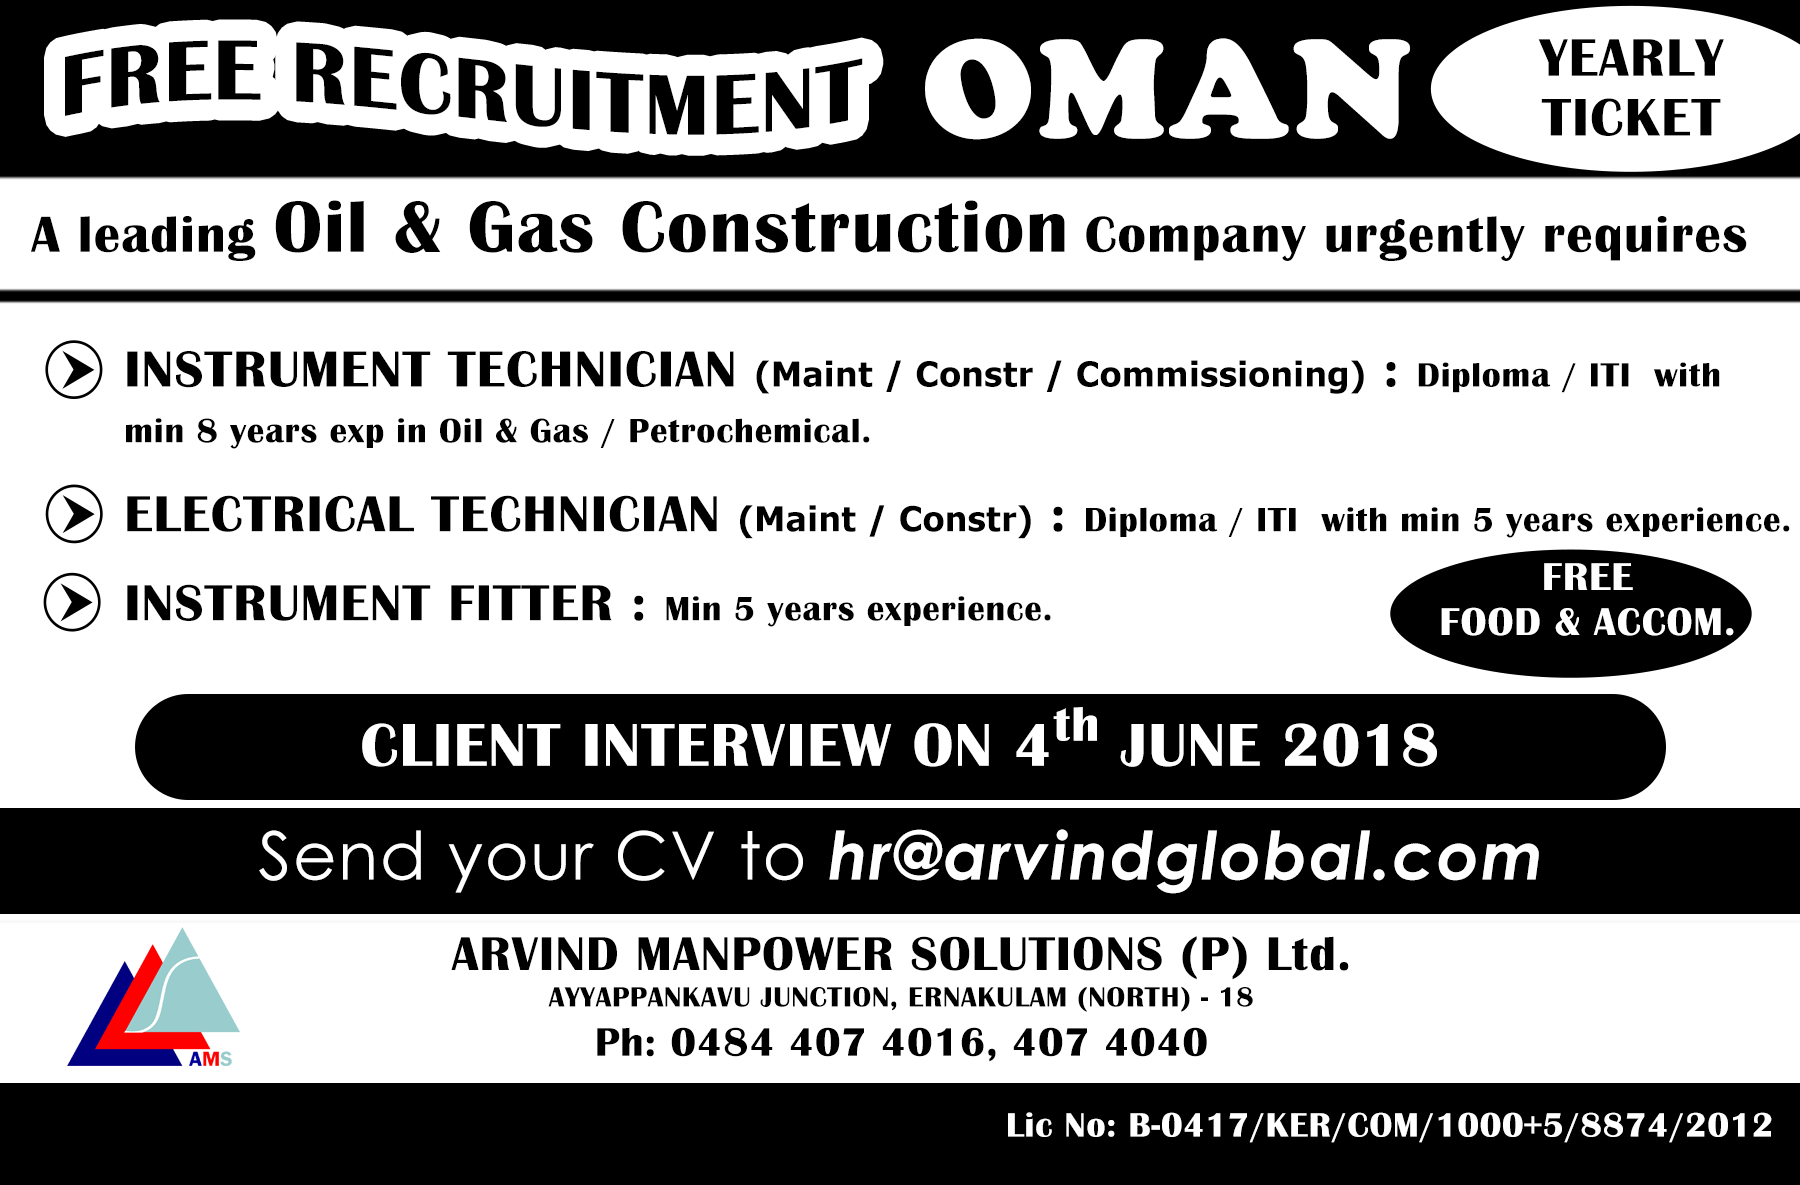 Free Recruitment to OMAN Client Interview on 4th June